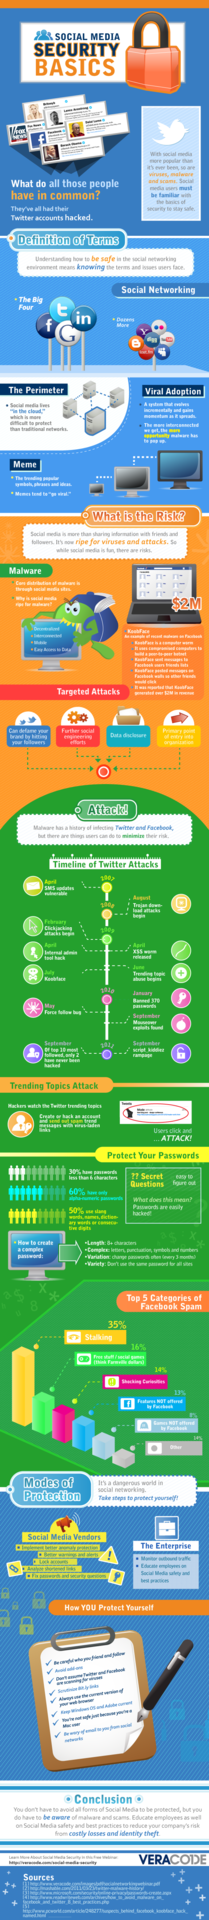 Social Media Security Basics [infographic] from OhMyGov: 6 Ways to Prevent Your Social Media Account from being Hacked Their tips: Ditch the easy passwords Lock your accounts Avoid add-ons Scan your computer for viruses regularly Keep your web browser current Use common sense